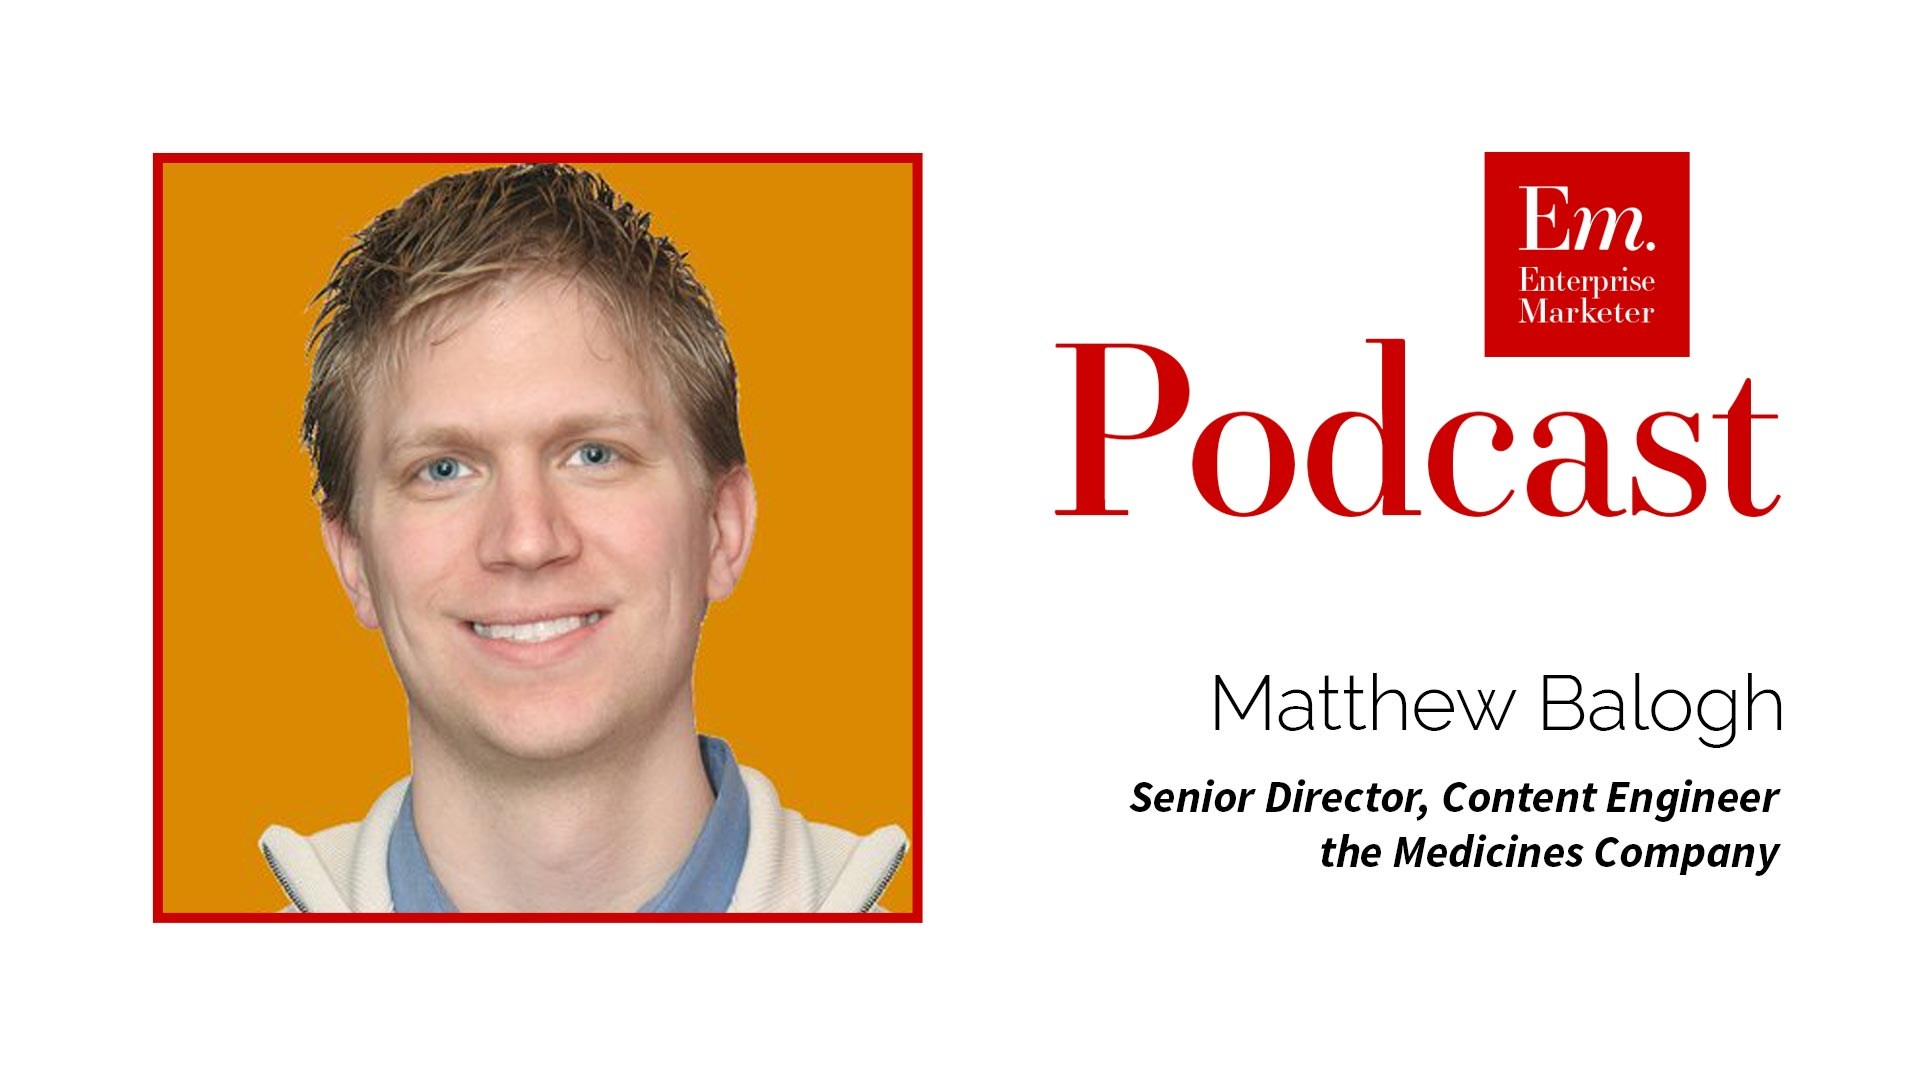 Matthew Balogh Talks About the Role of Content Engineer